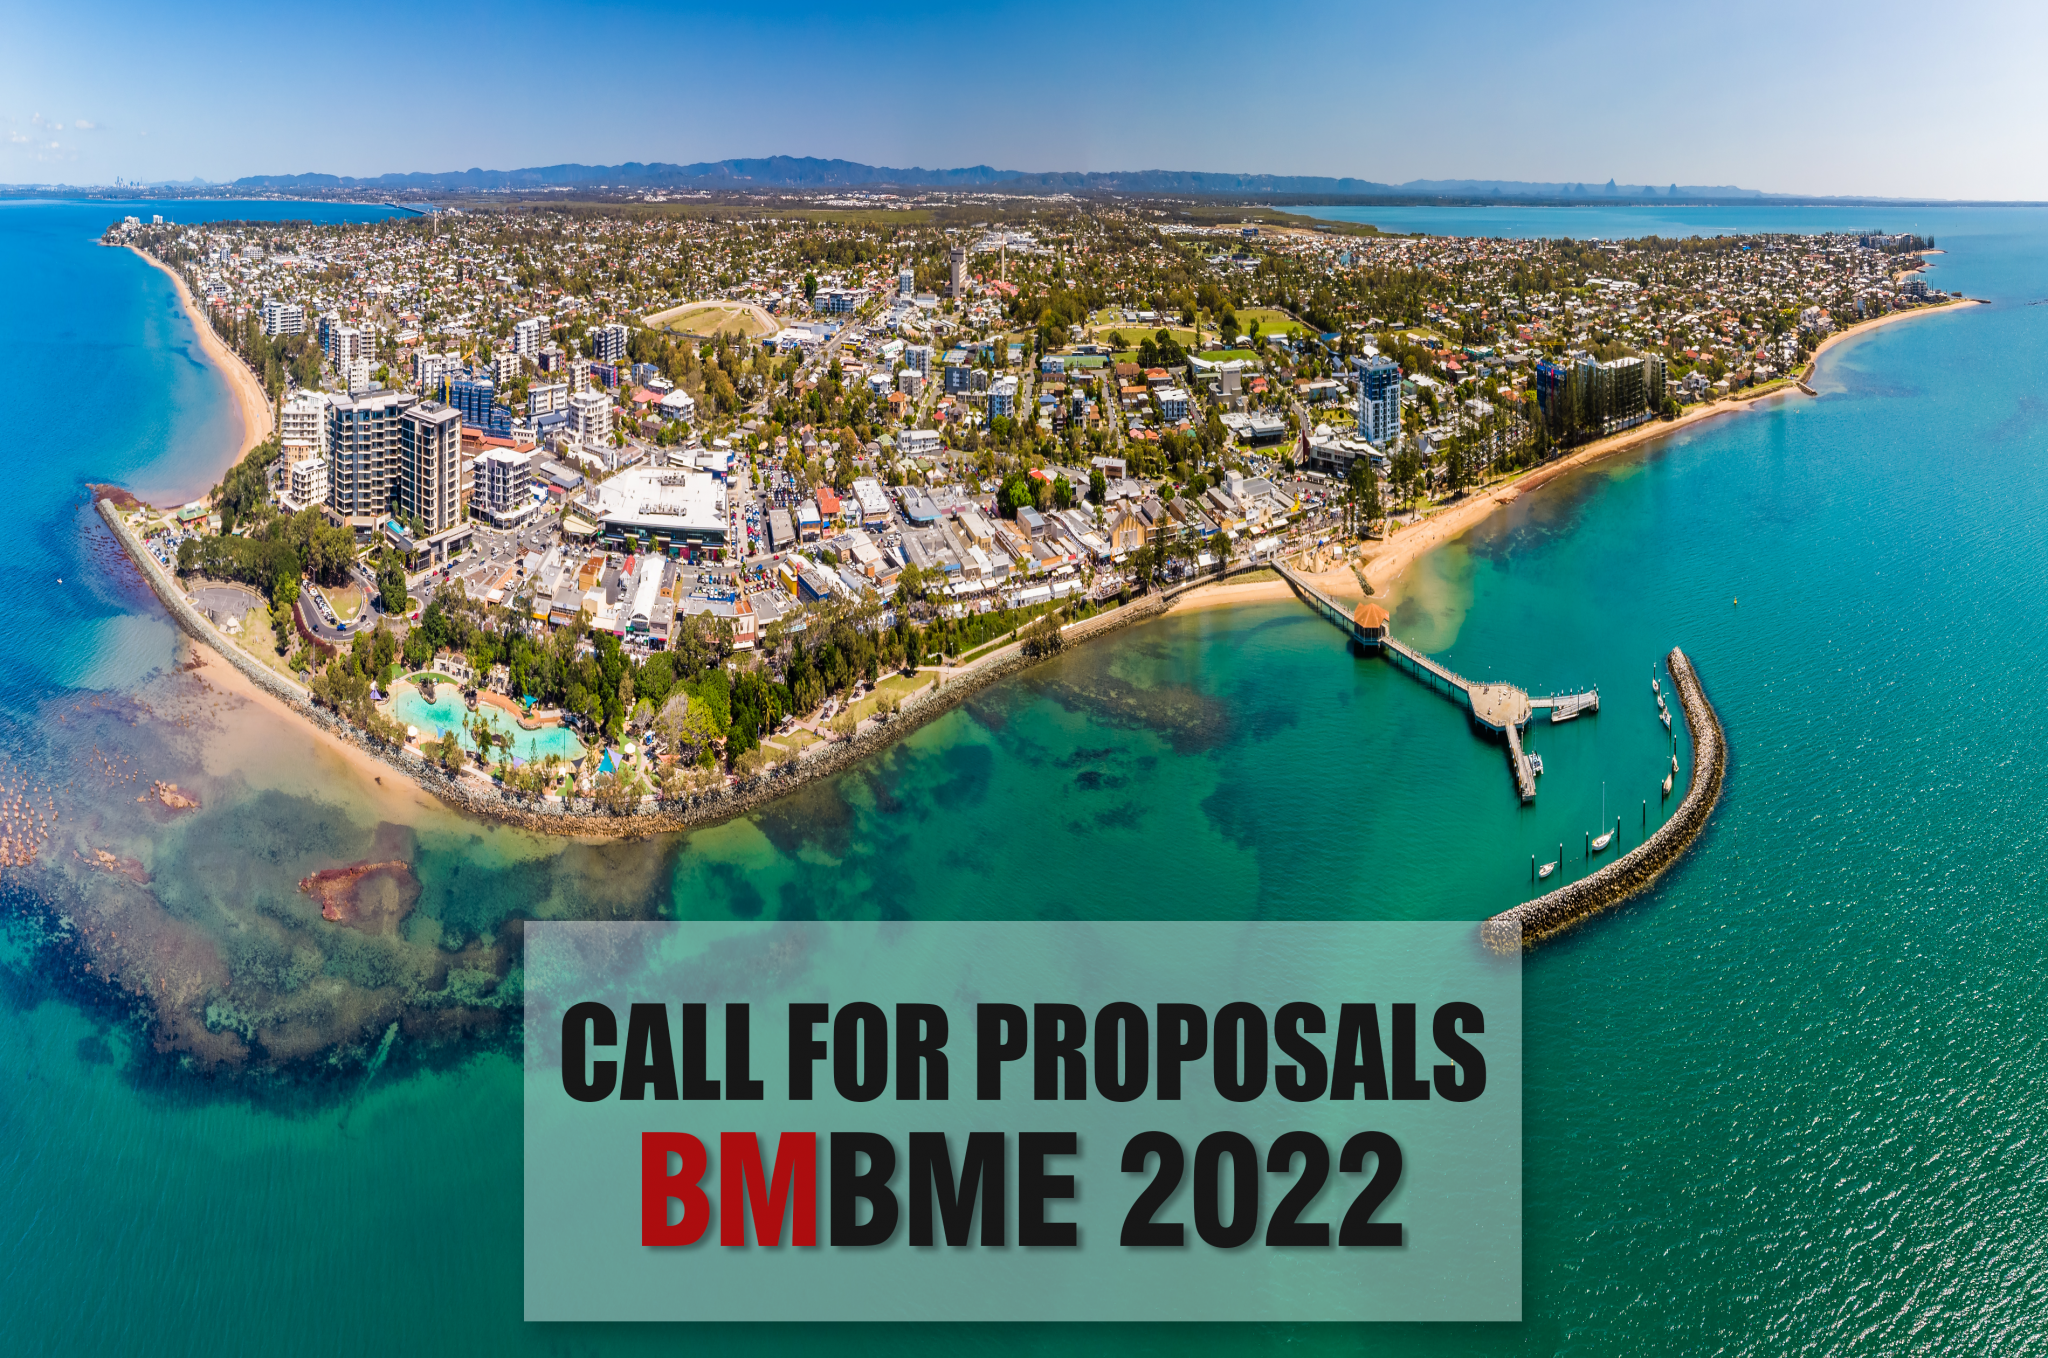 BMBME2022 Call for Proposals